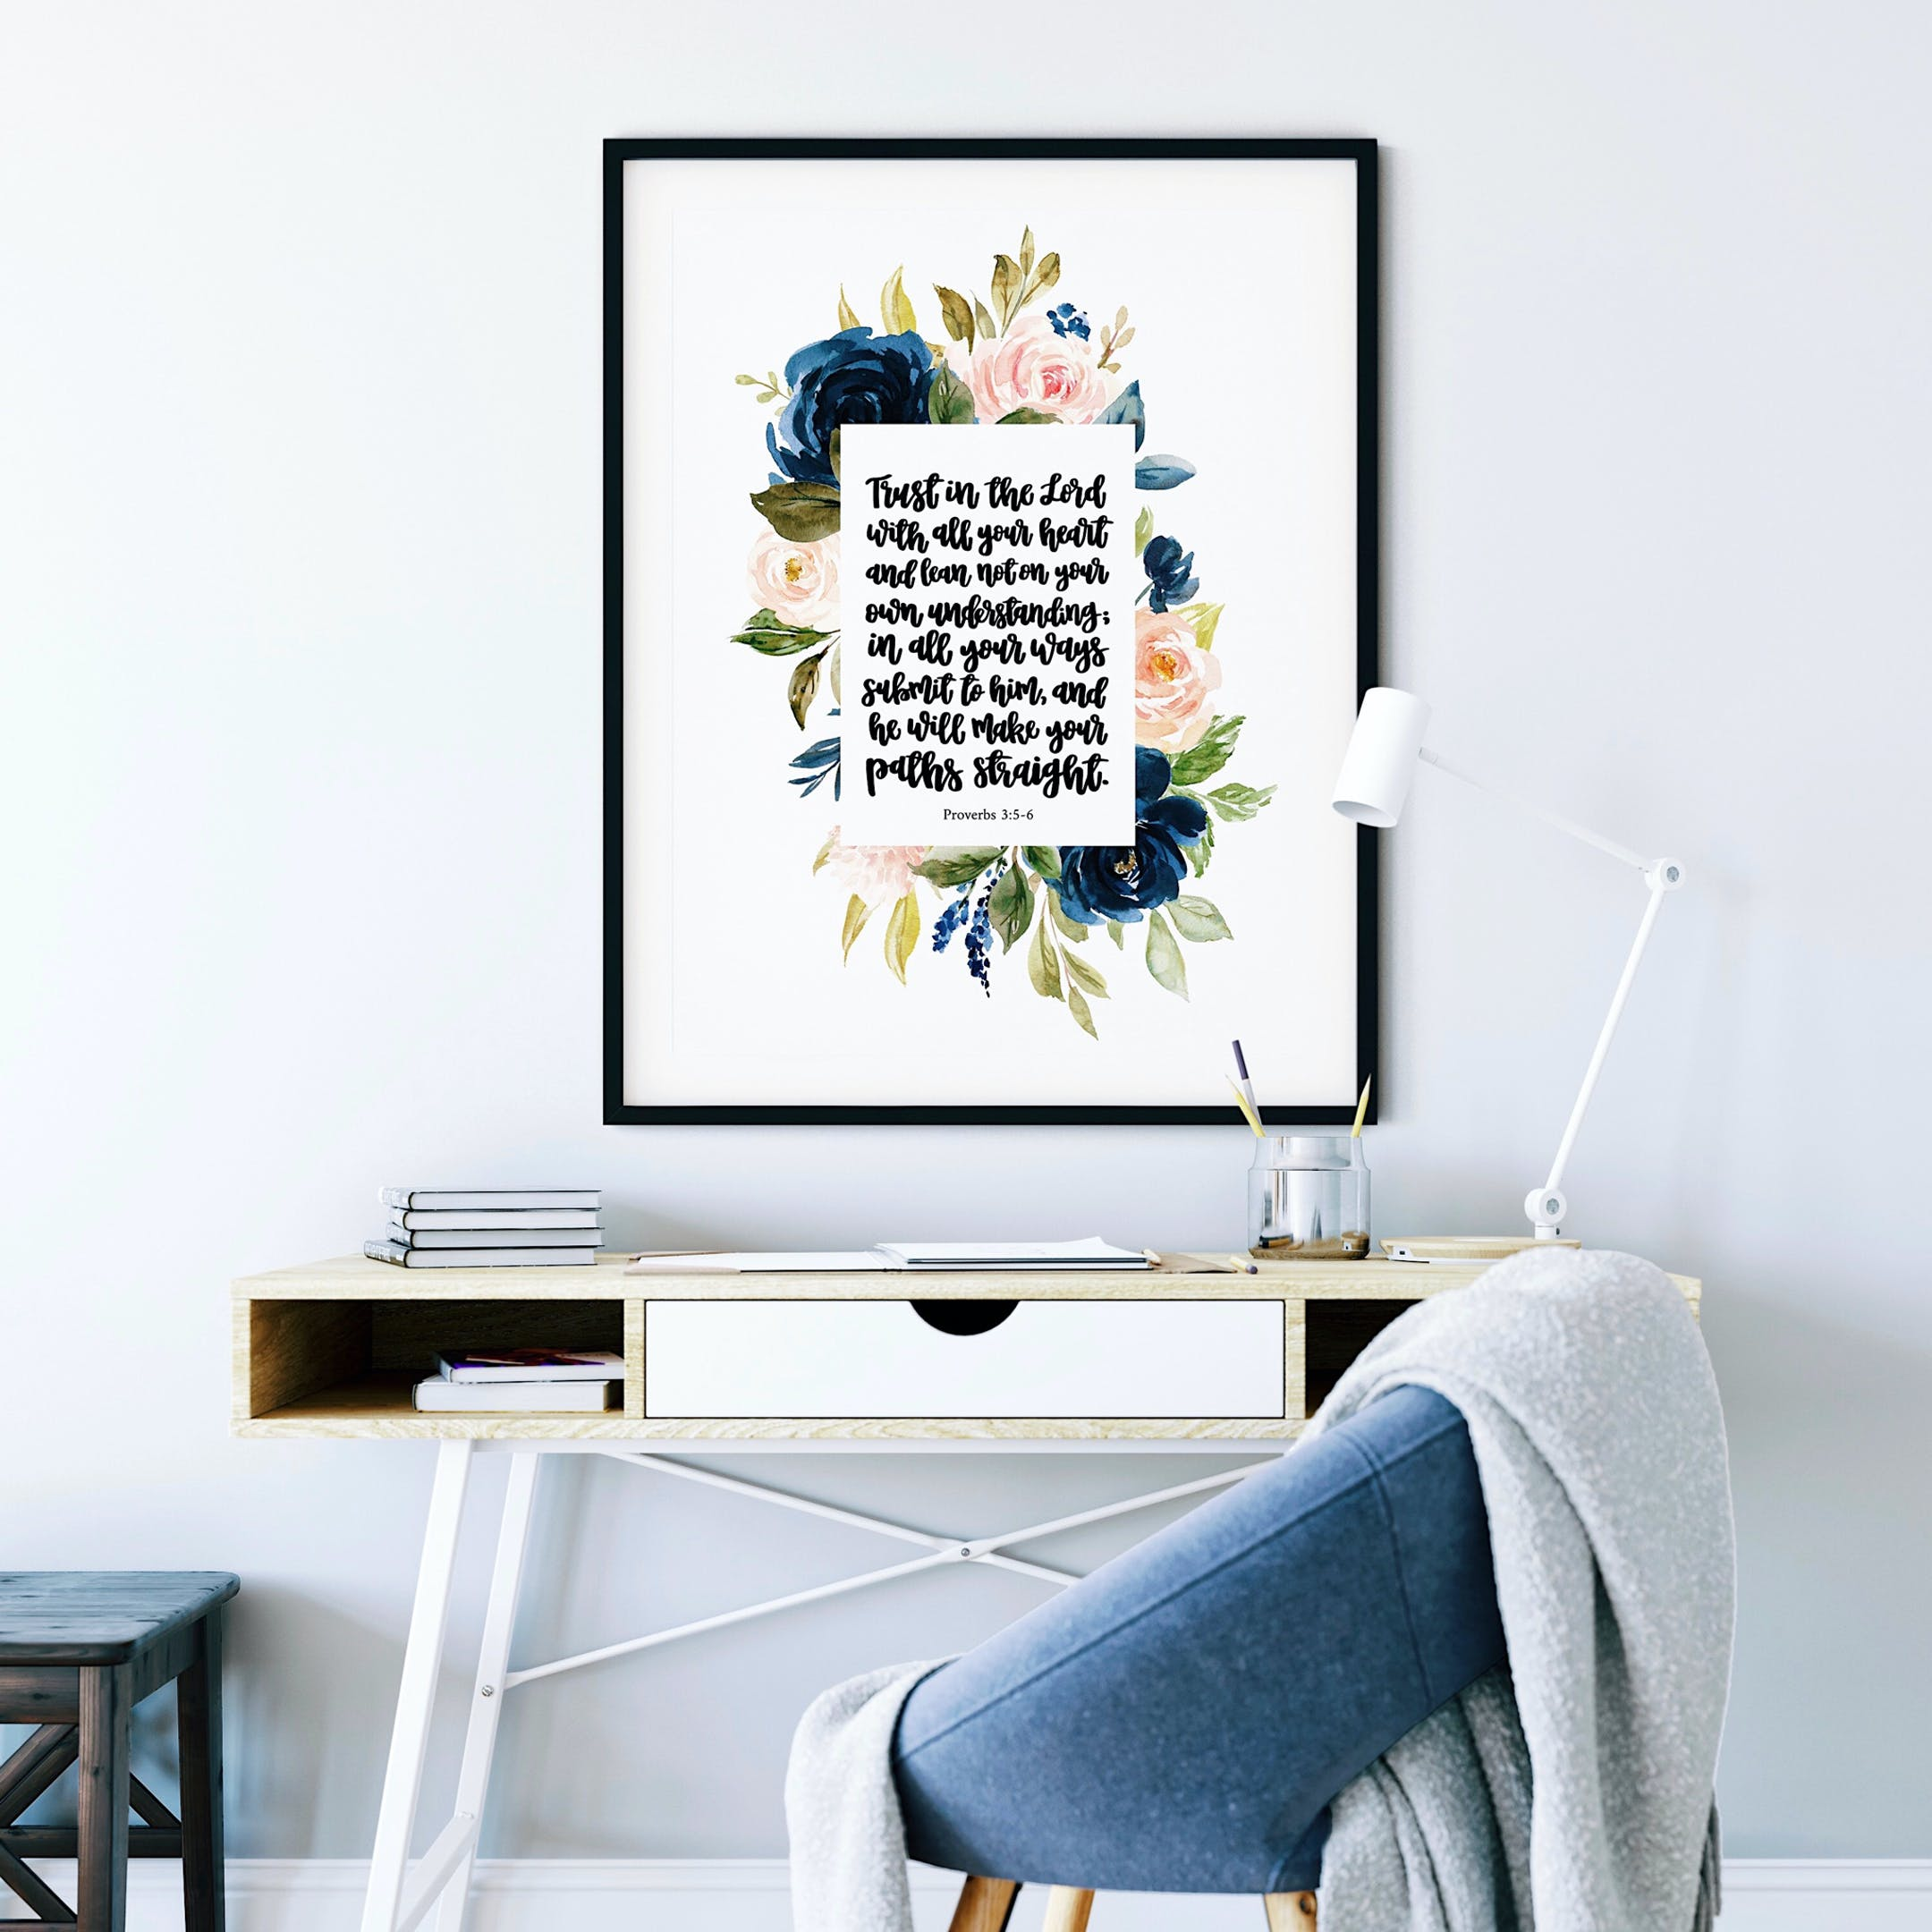 Floral Proverbs 3:5-6 Print - Trust In The Lord - Izzy & Pop